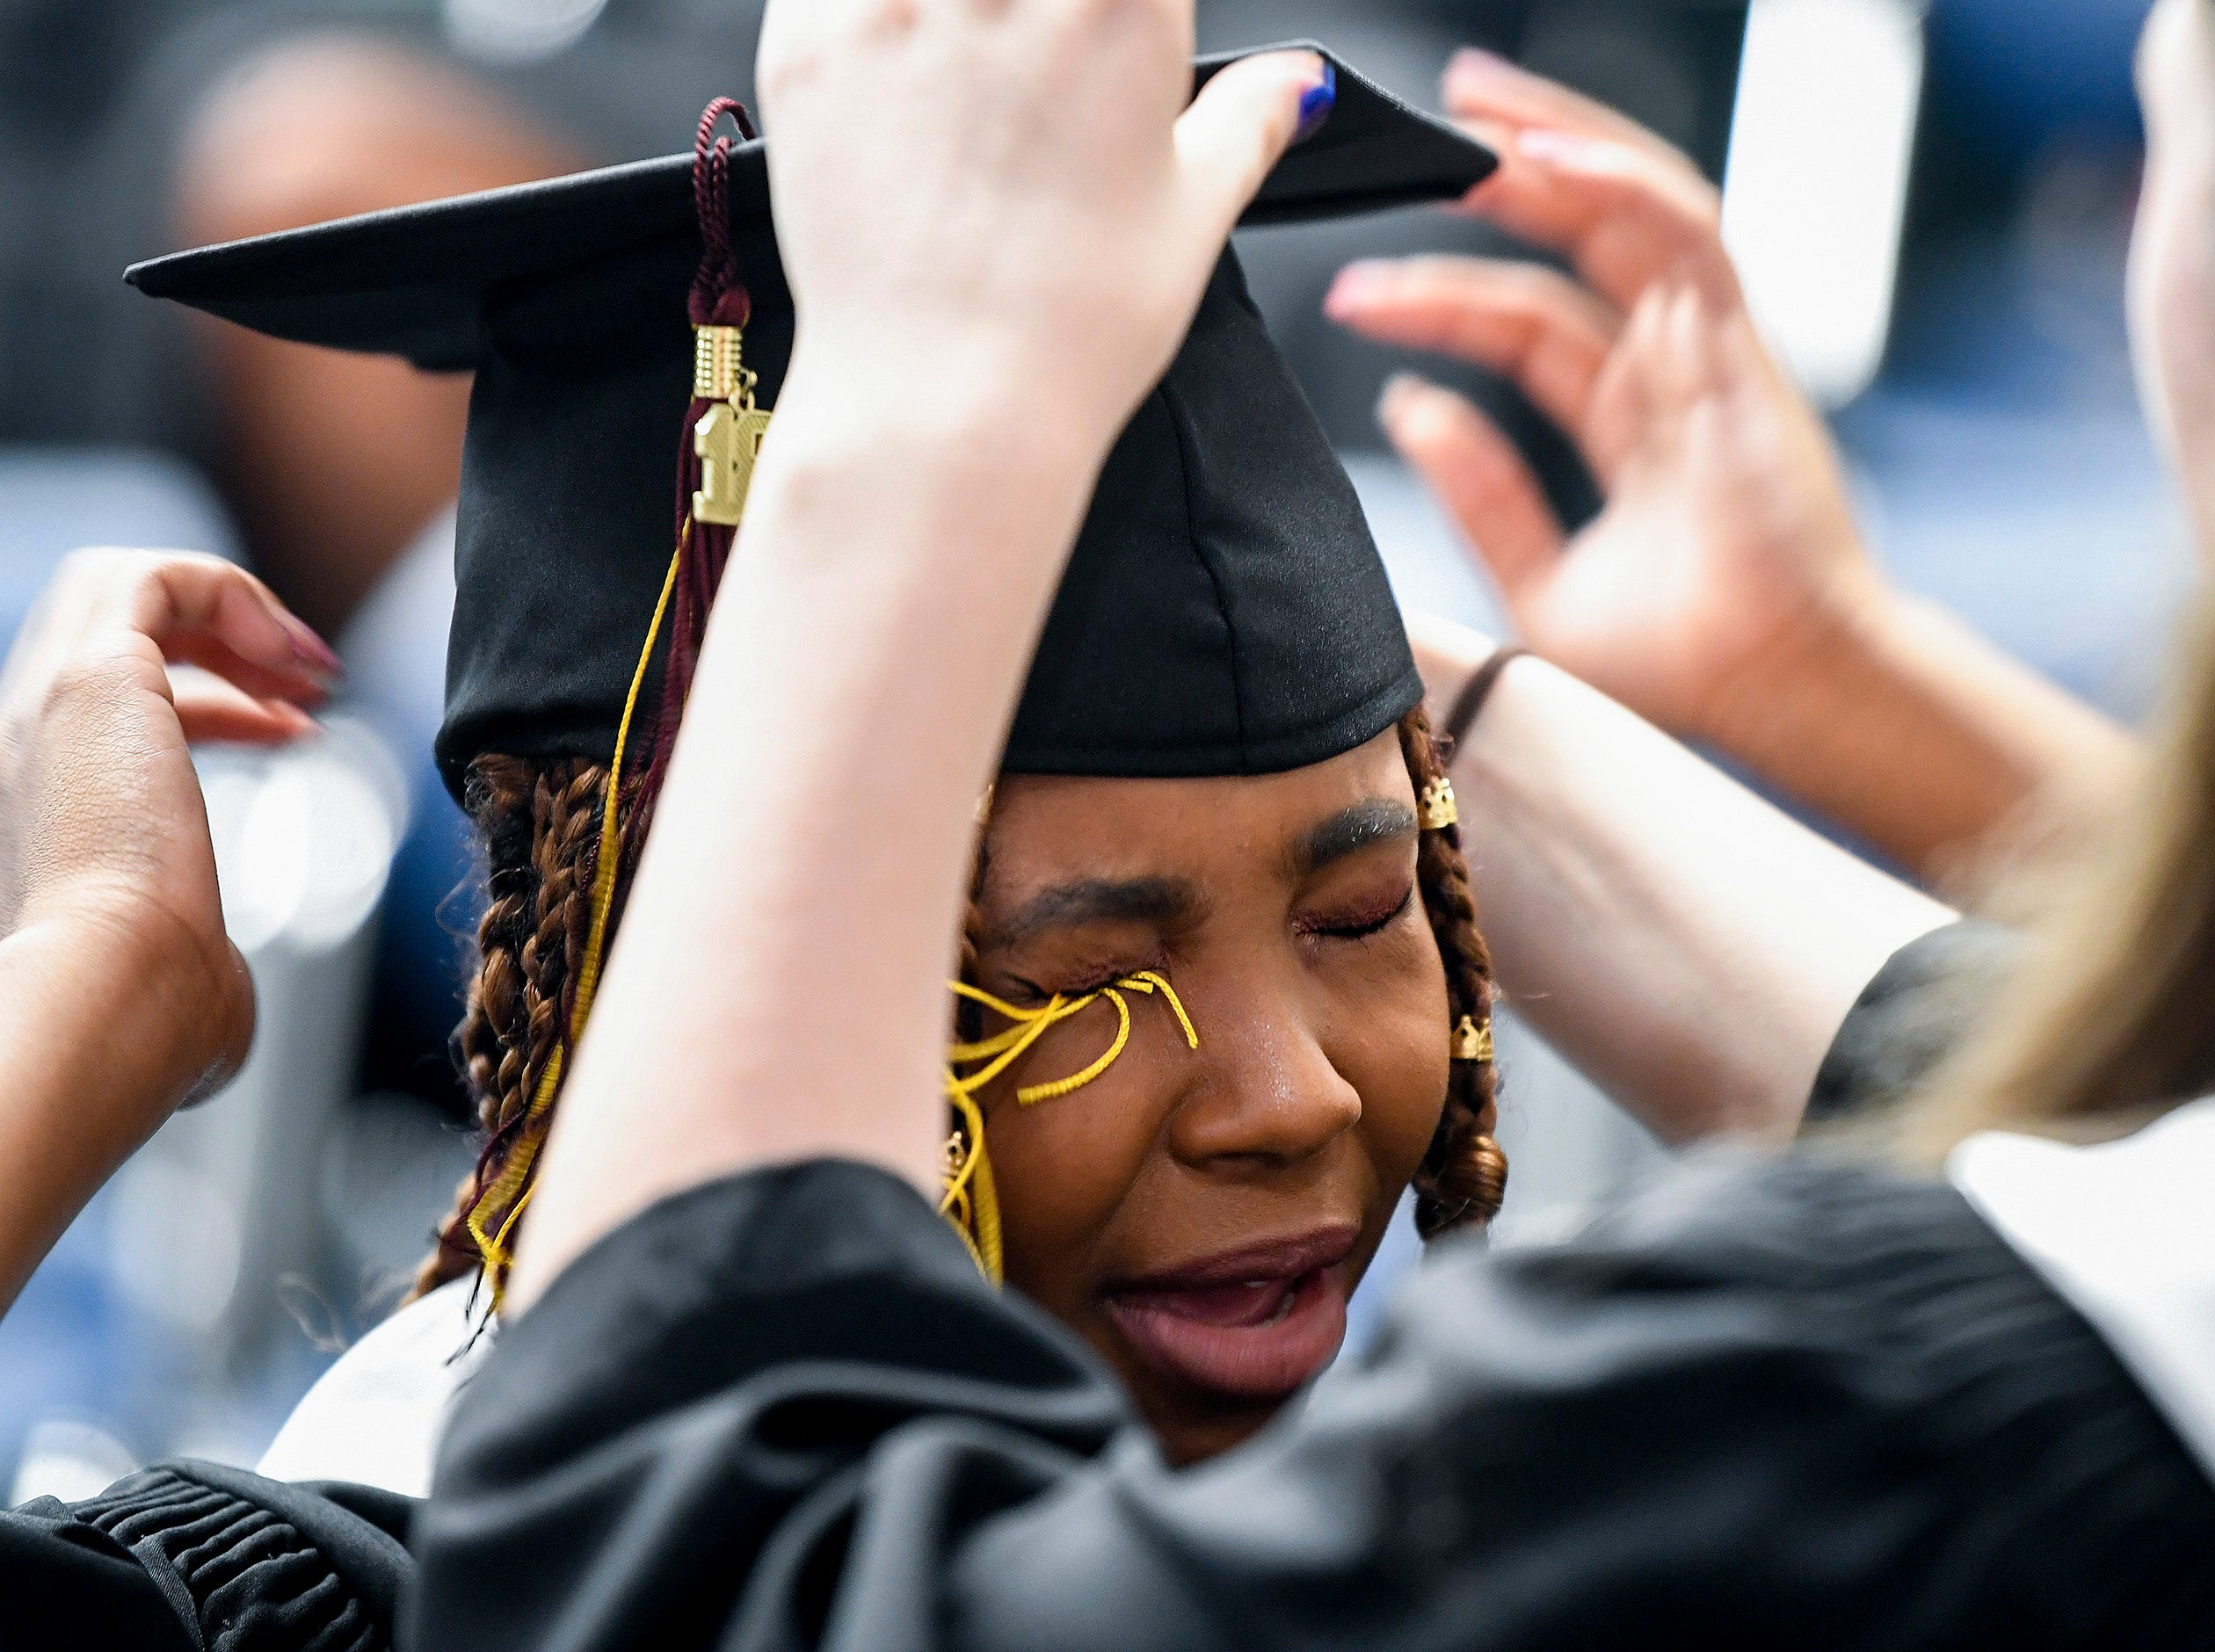 LAMP Magnet High School graduate Tymia Ballard gets her graduation tassel caught in her eye during graduation at First Baptist Church in Montgomery, Ala. on Tuesday May 22, 2018